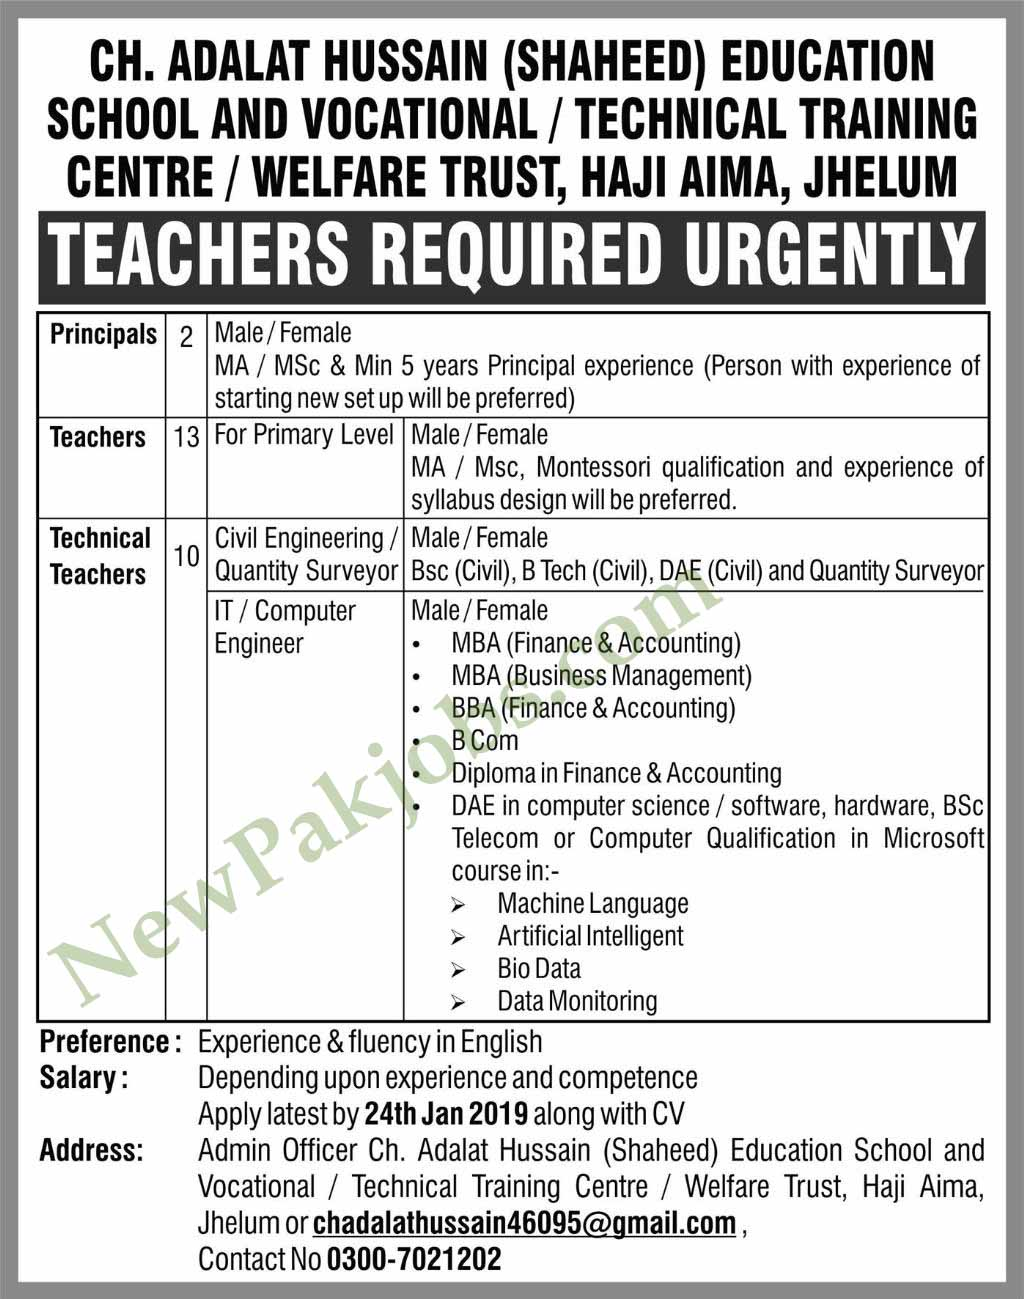 Teachers Jobs in Ch Adalat Hussain shaheed Education